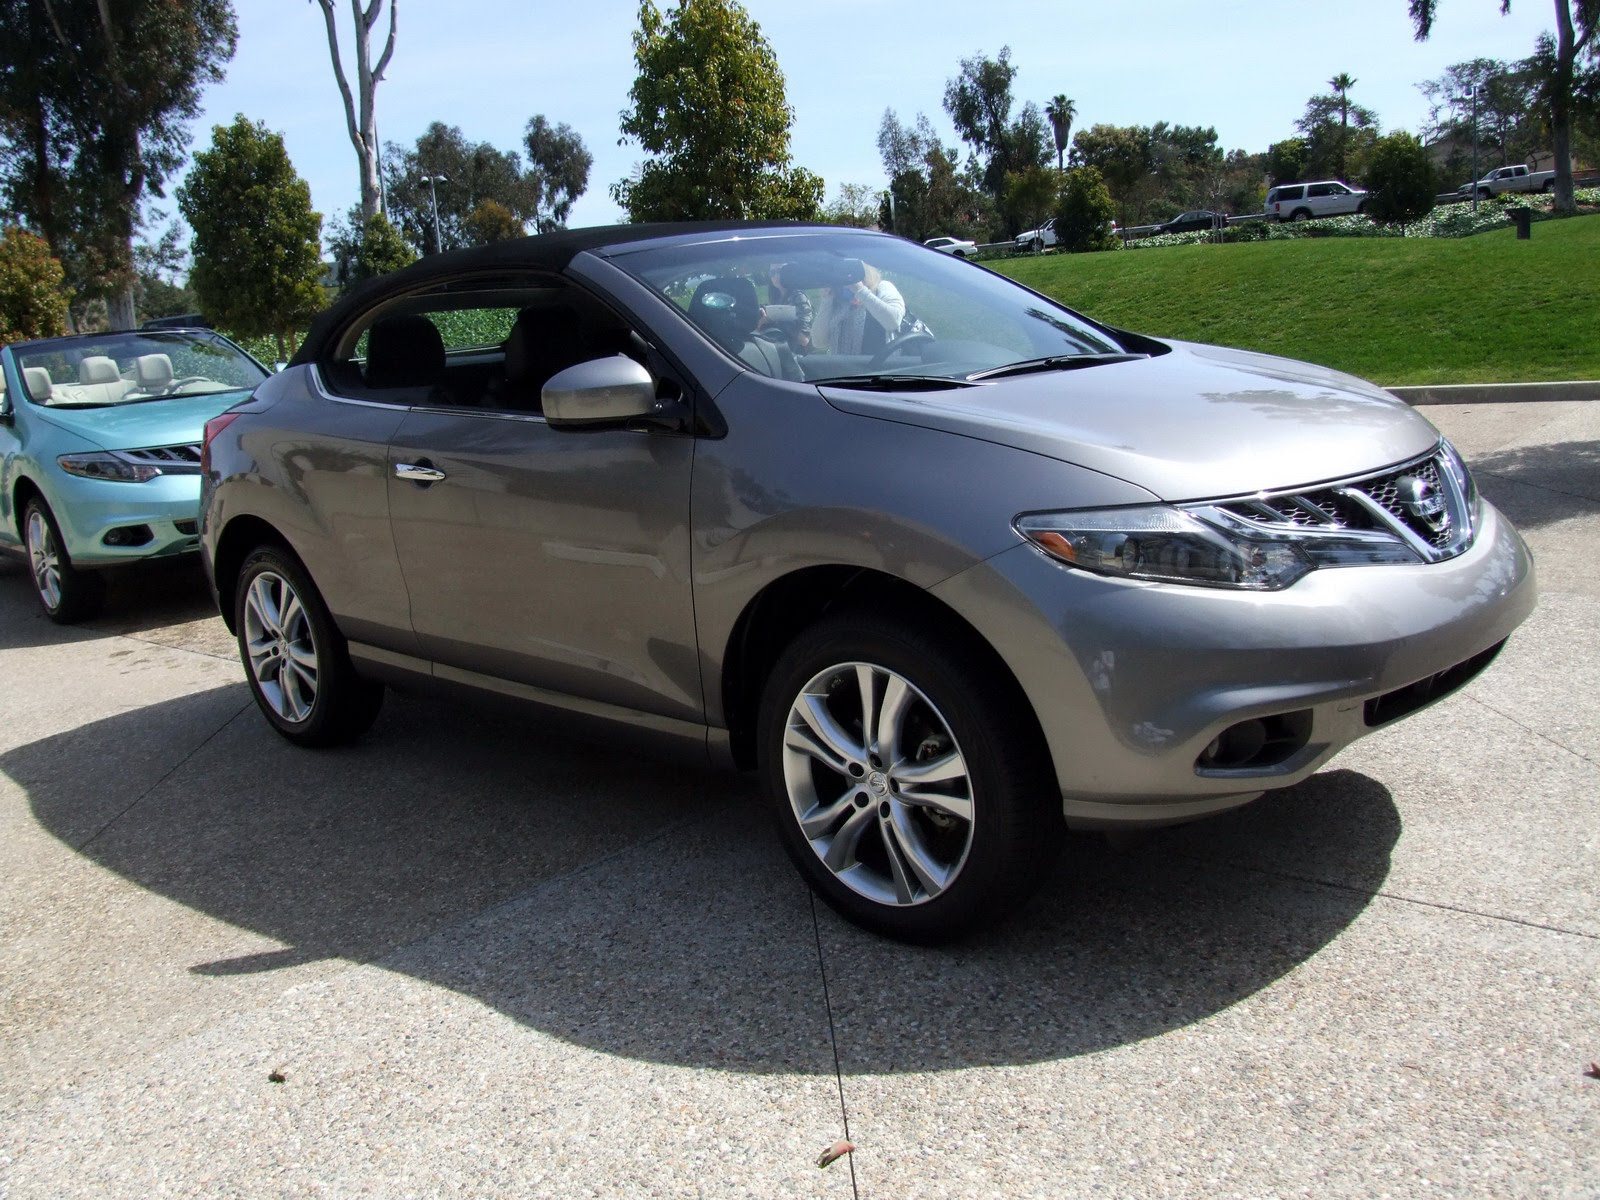 2010 - [Nissan] Murano CrossCabriolet - Page 4 2011-Nissan-Murano-CC-TD-651